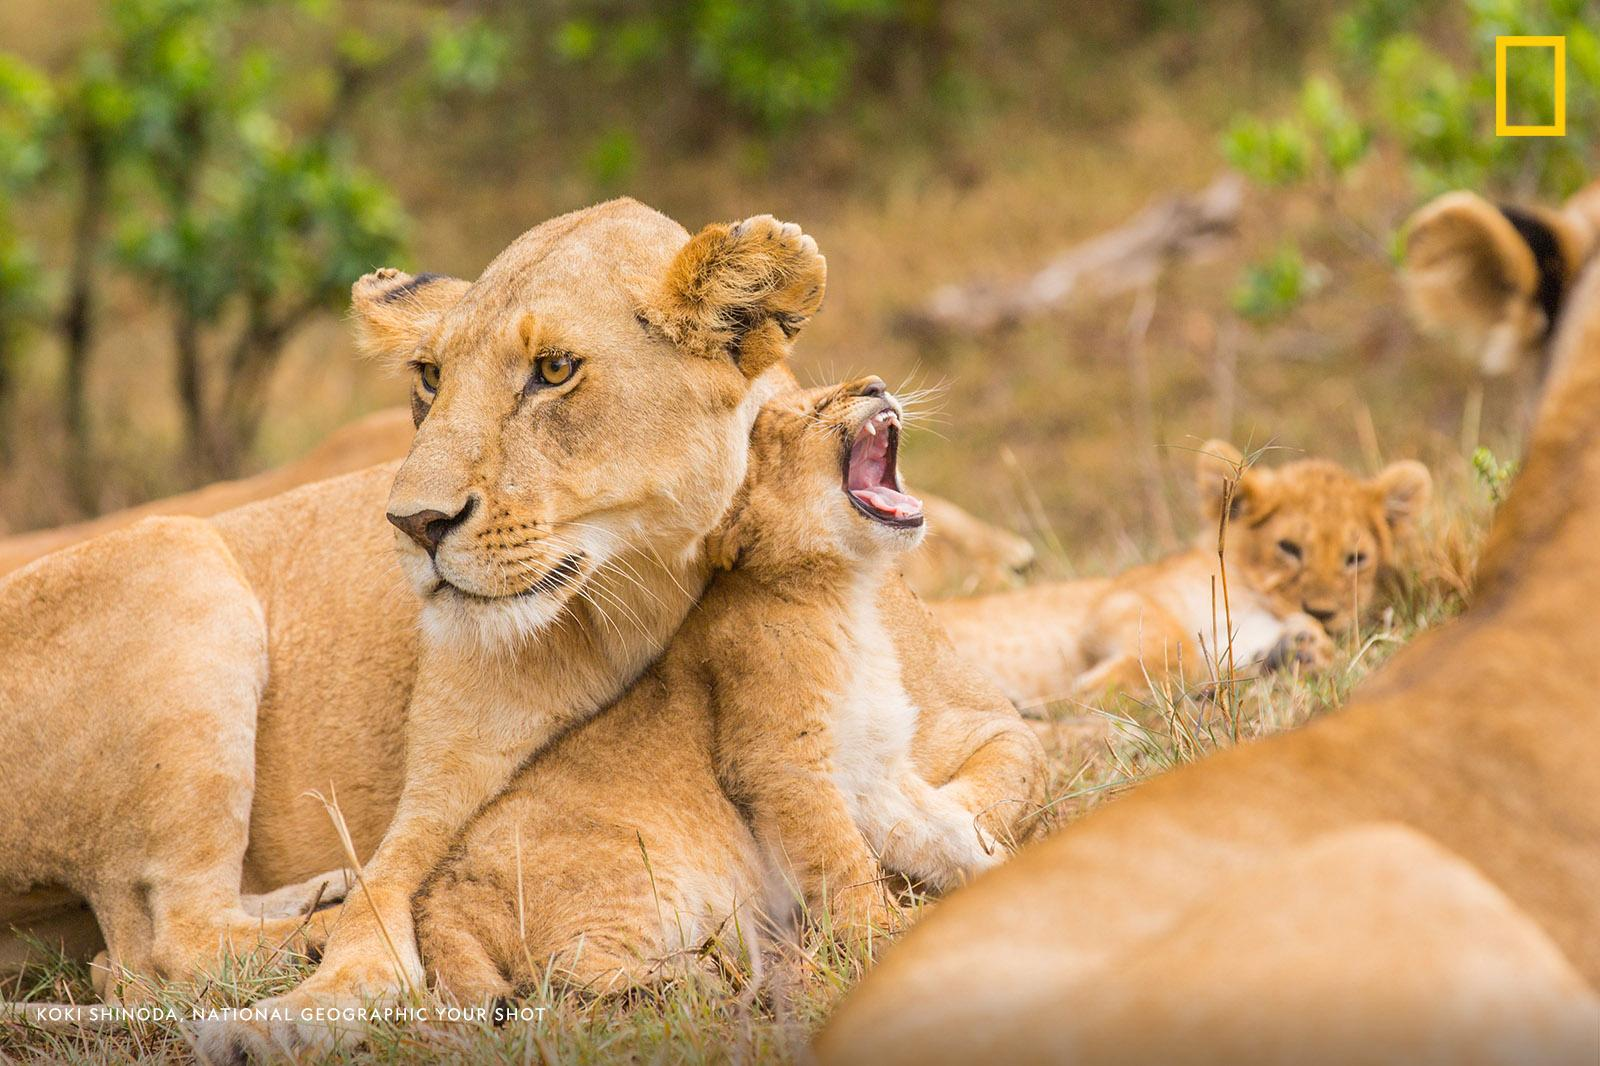 Wake up! It's officially #WorldLionDay and we're ready to celebrate these magnificent big cats. https://on.natgeo.com/31wcrba